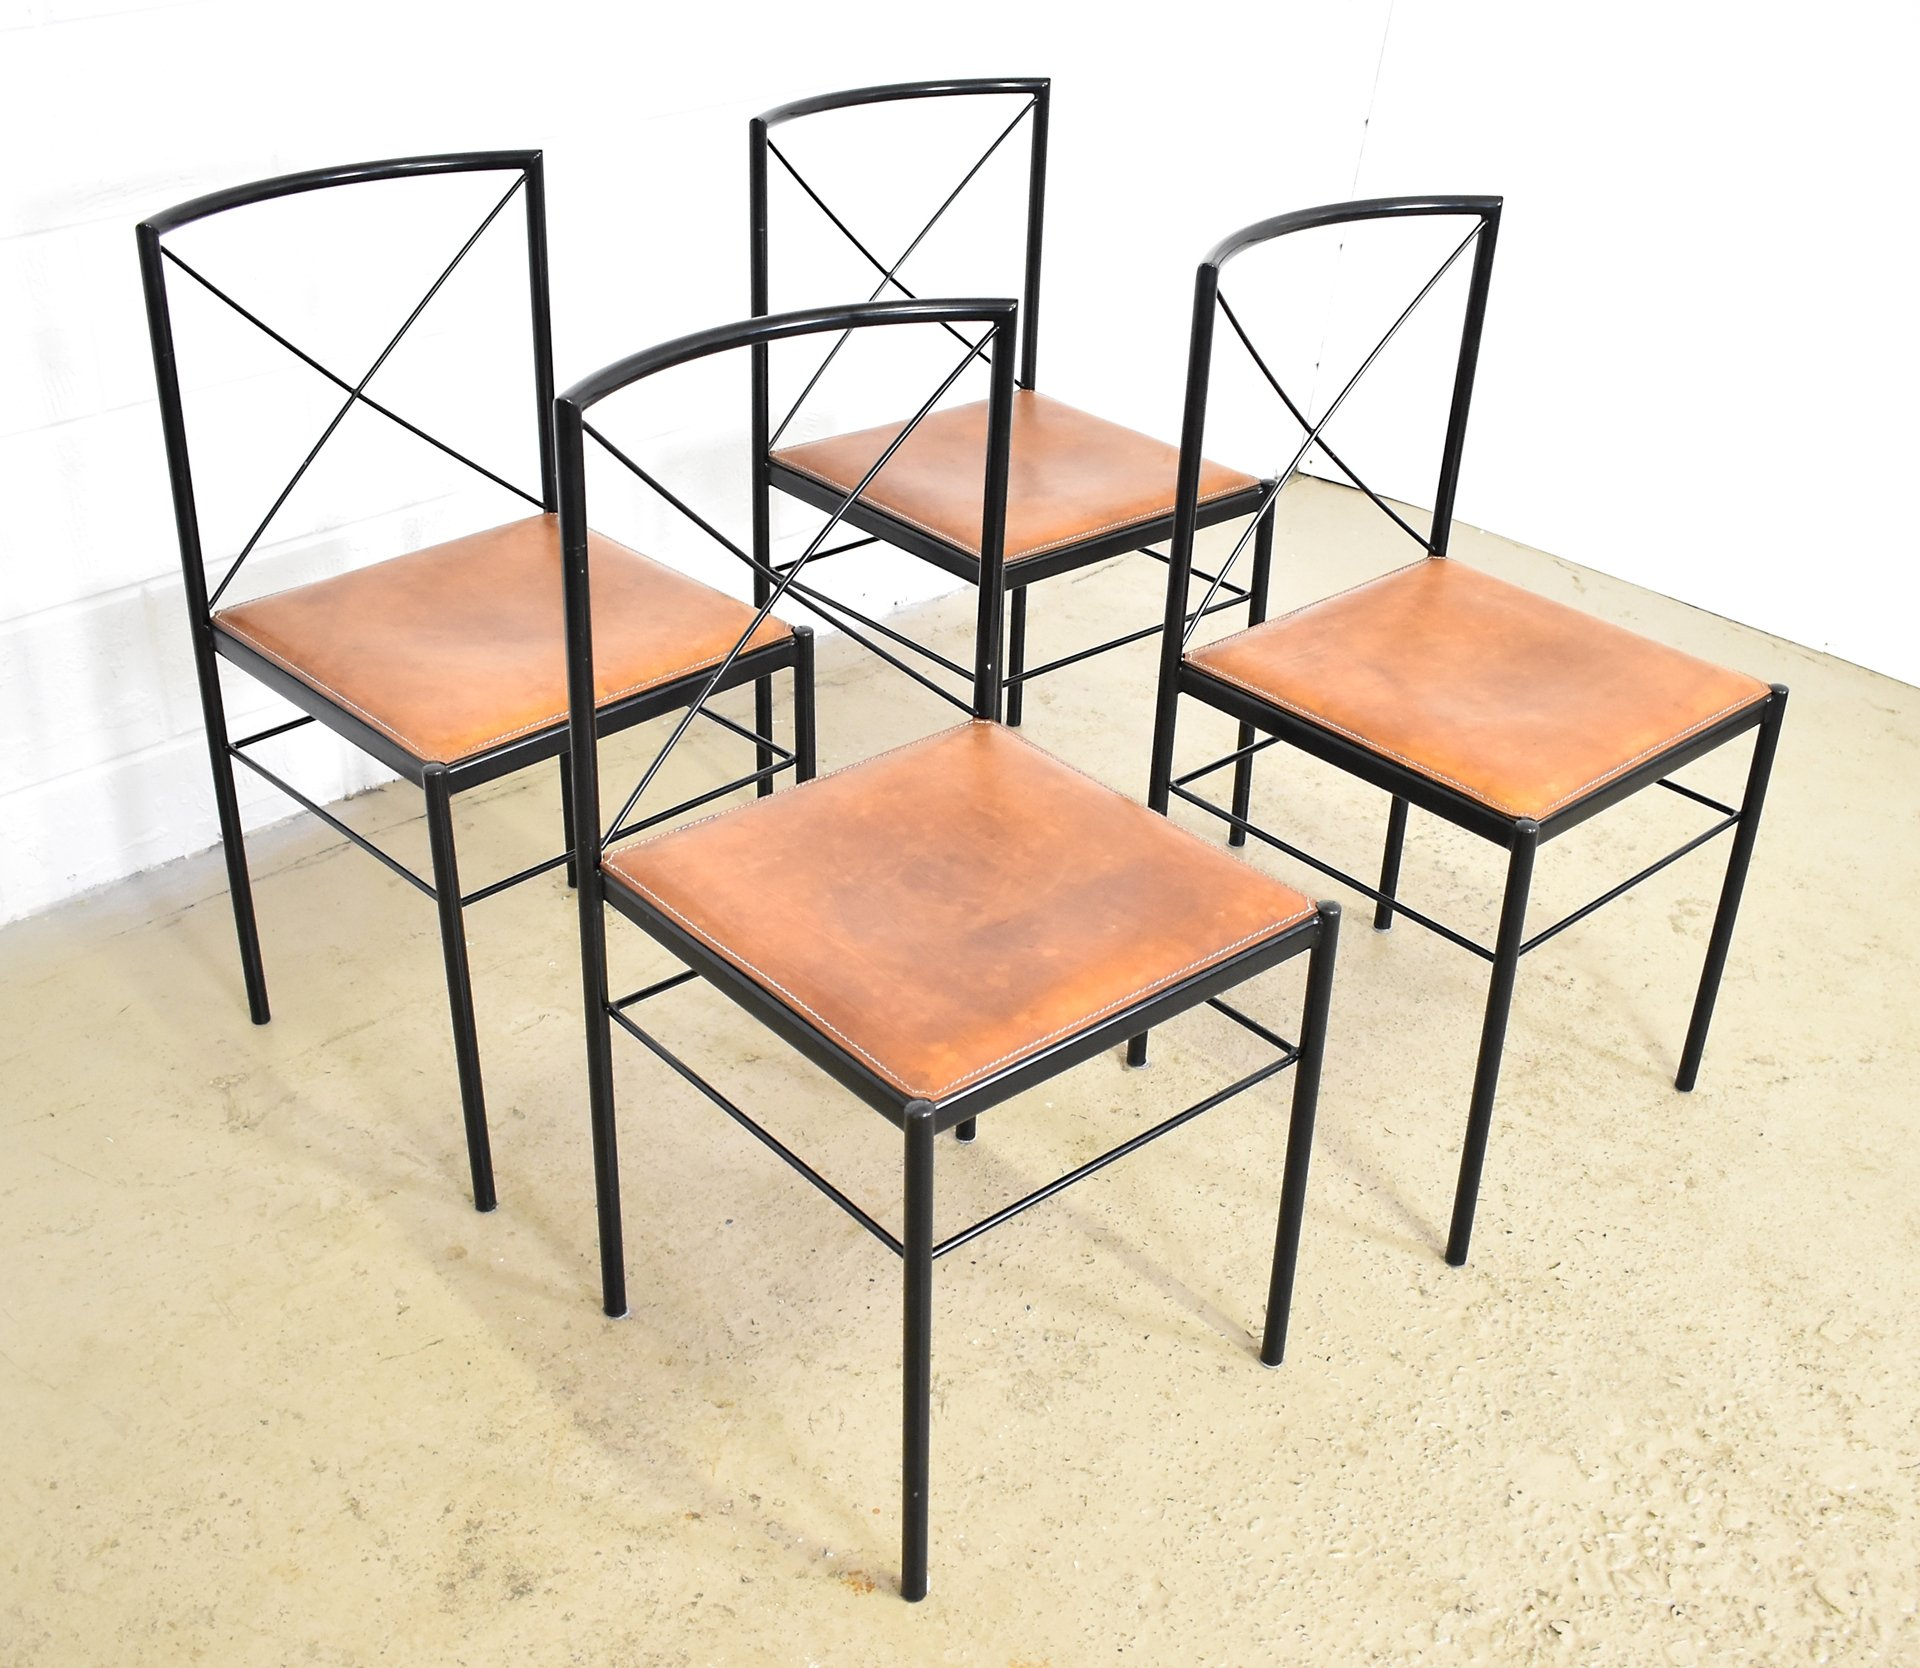 Remarkable Set Of 4 Arrben Italy Cognac Saddle Leather Dining Chairs Ibusinesslaw Wood Chair Design Ideas Ibusinesslaworg